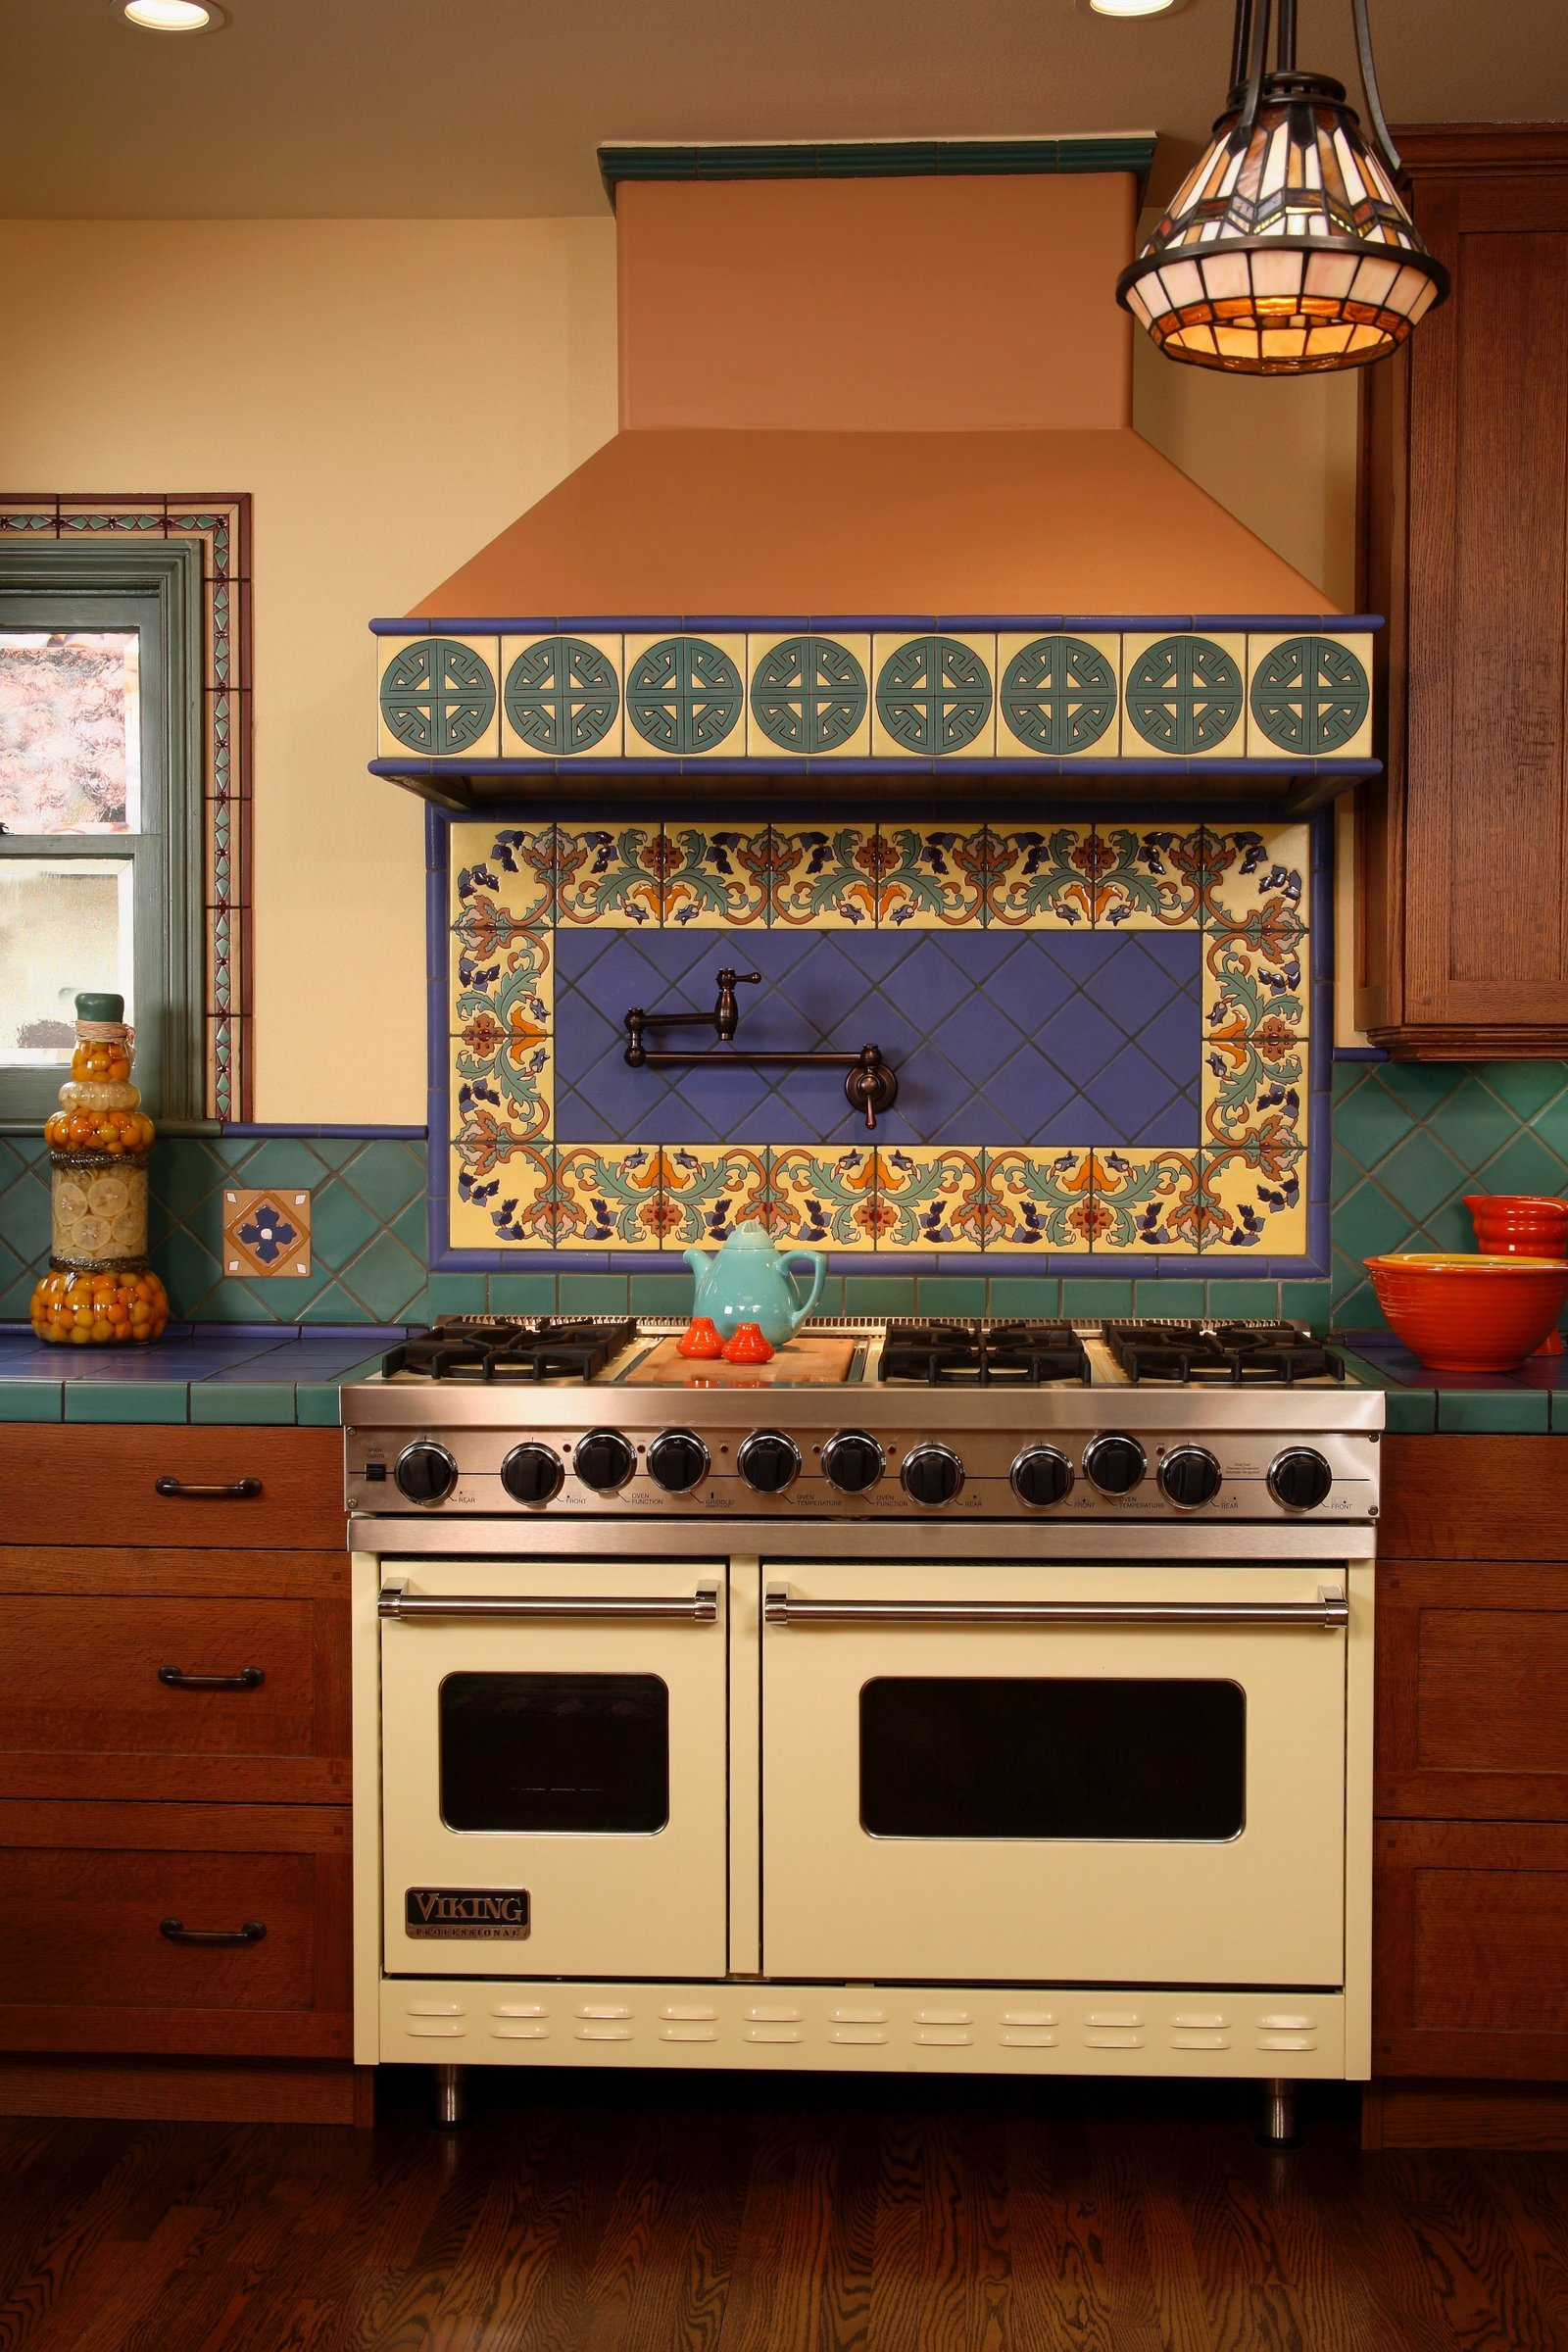 Santa Fe Colorful Kitchen Range